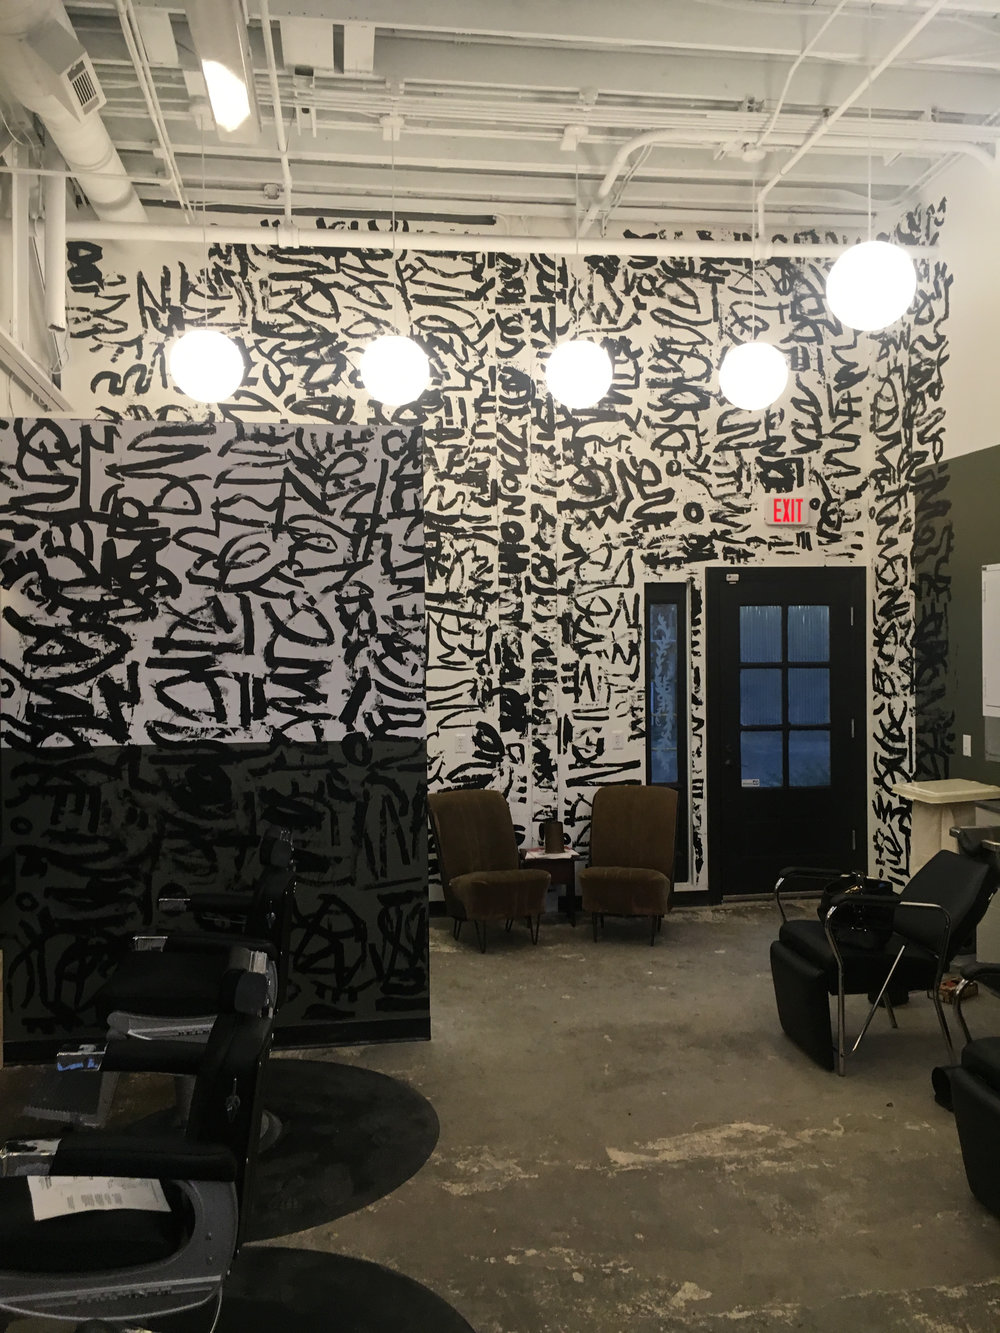 Rudy's Barbershop. Nashville, Tennessee